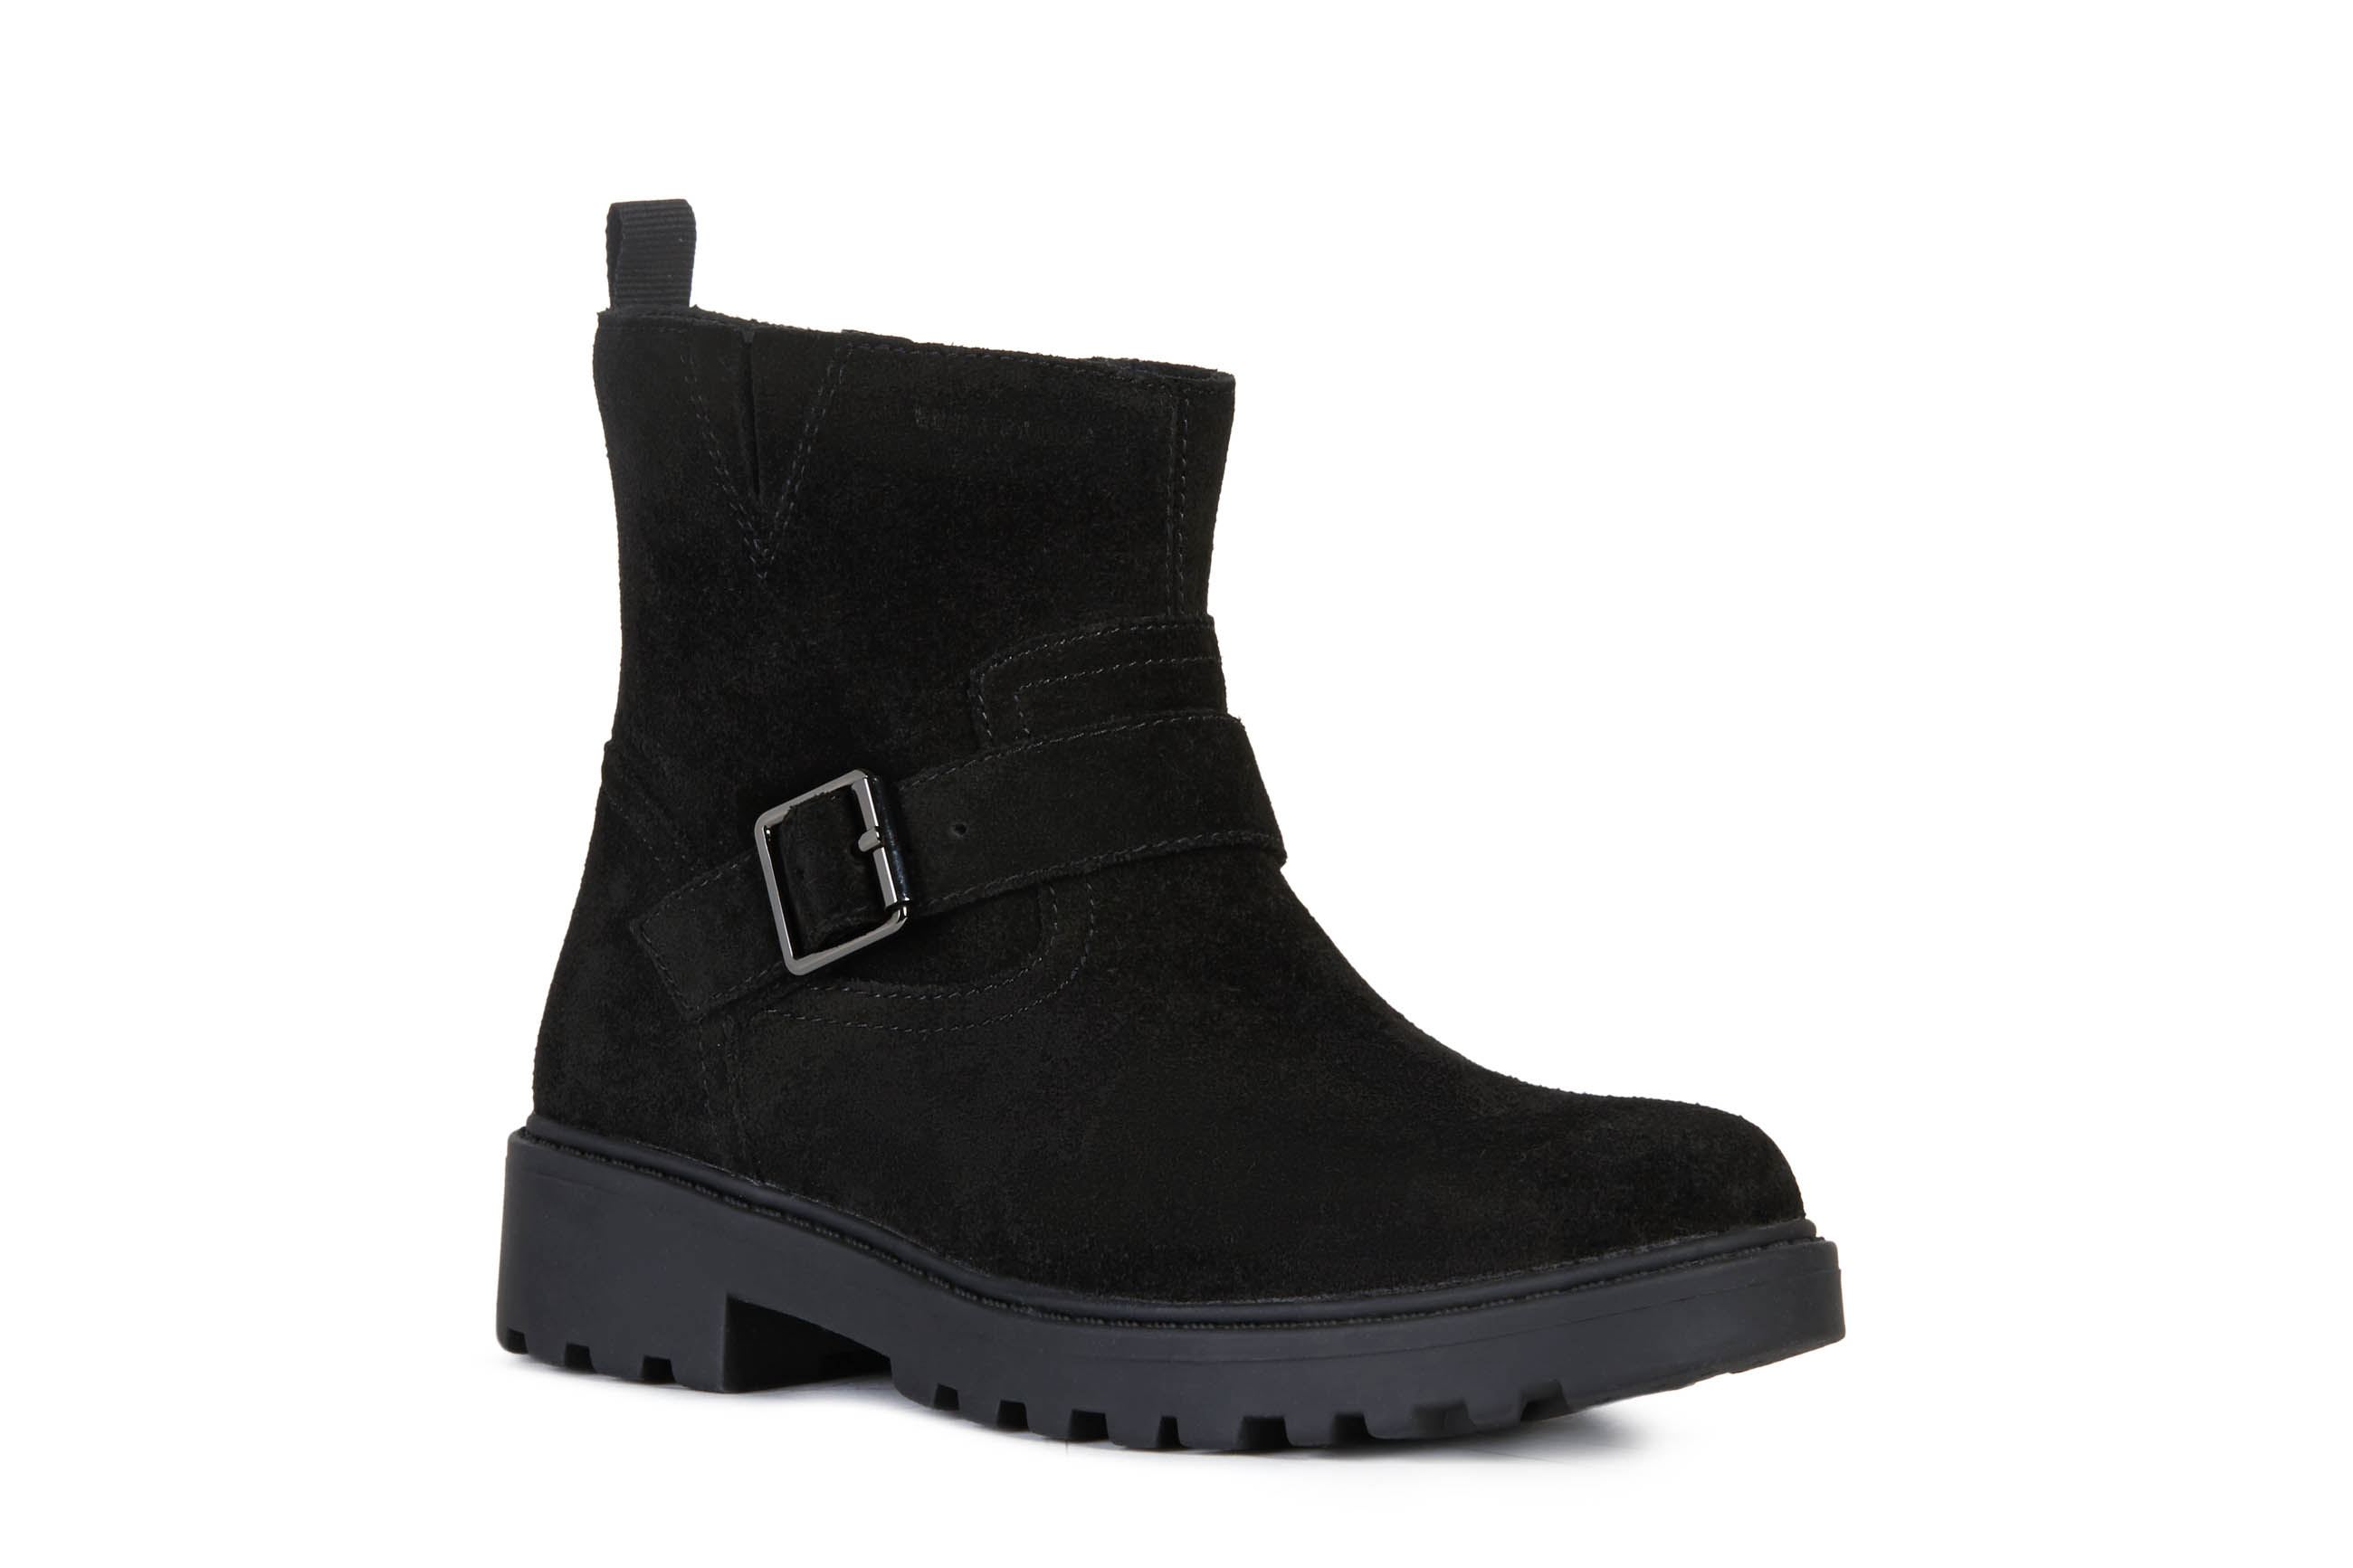 BOTA  WATERPROOF J CASEY GIRL WPF B. PIEL/SINTETICO BLACK